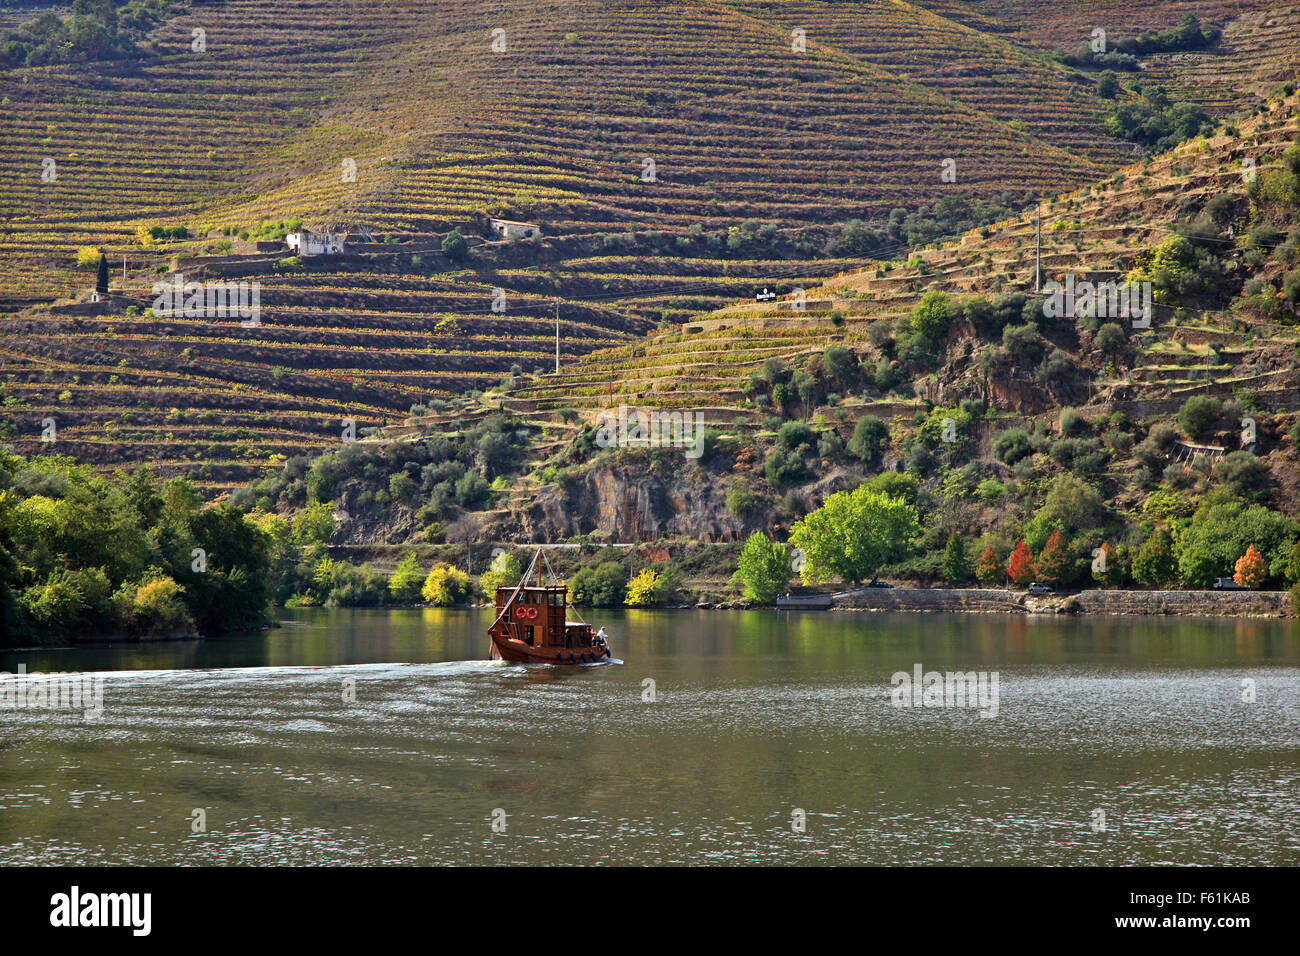 Cruising river Douro with a traditional boat called 'barco rabelo', Porte e Norte, Portugal. - Stock Image